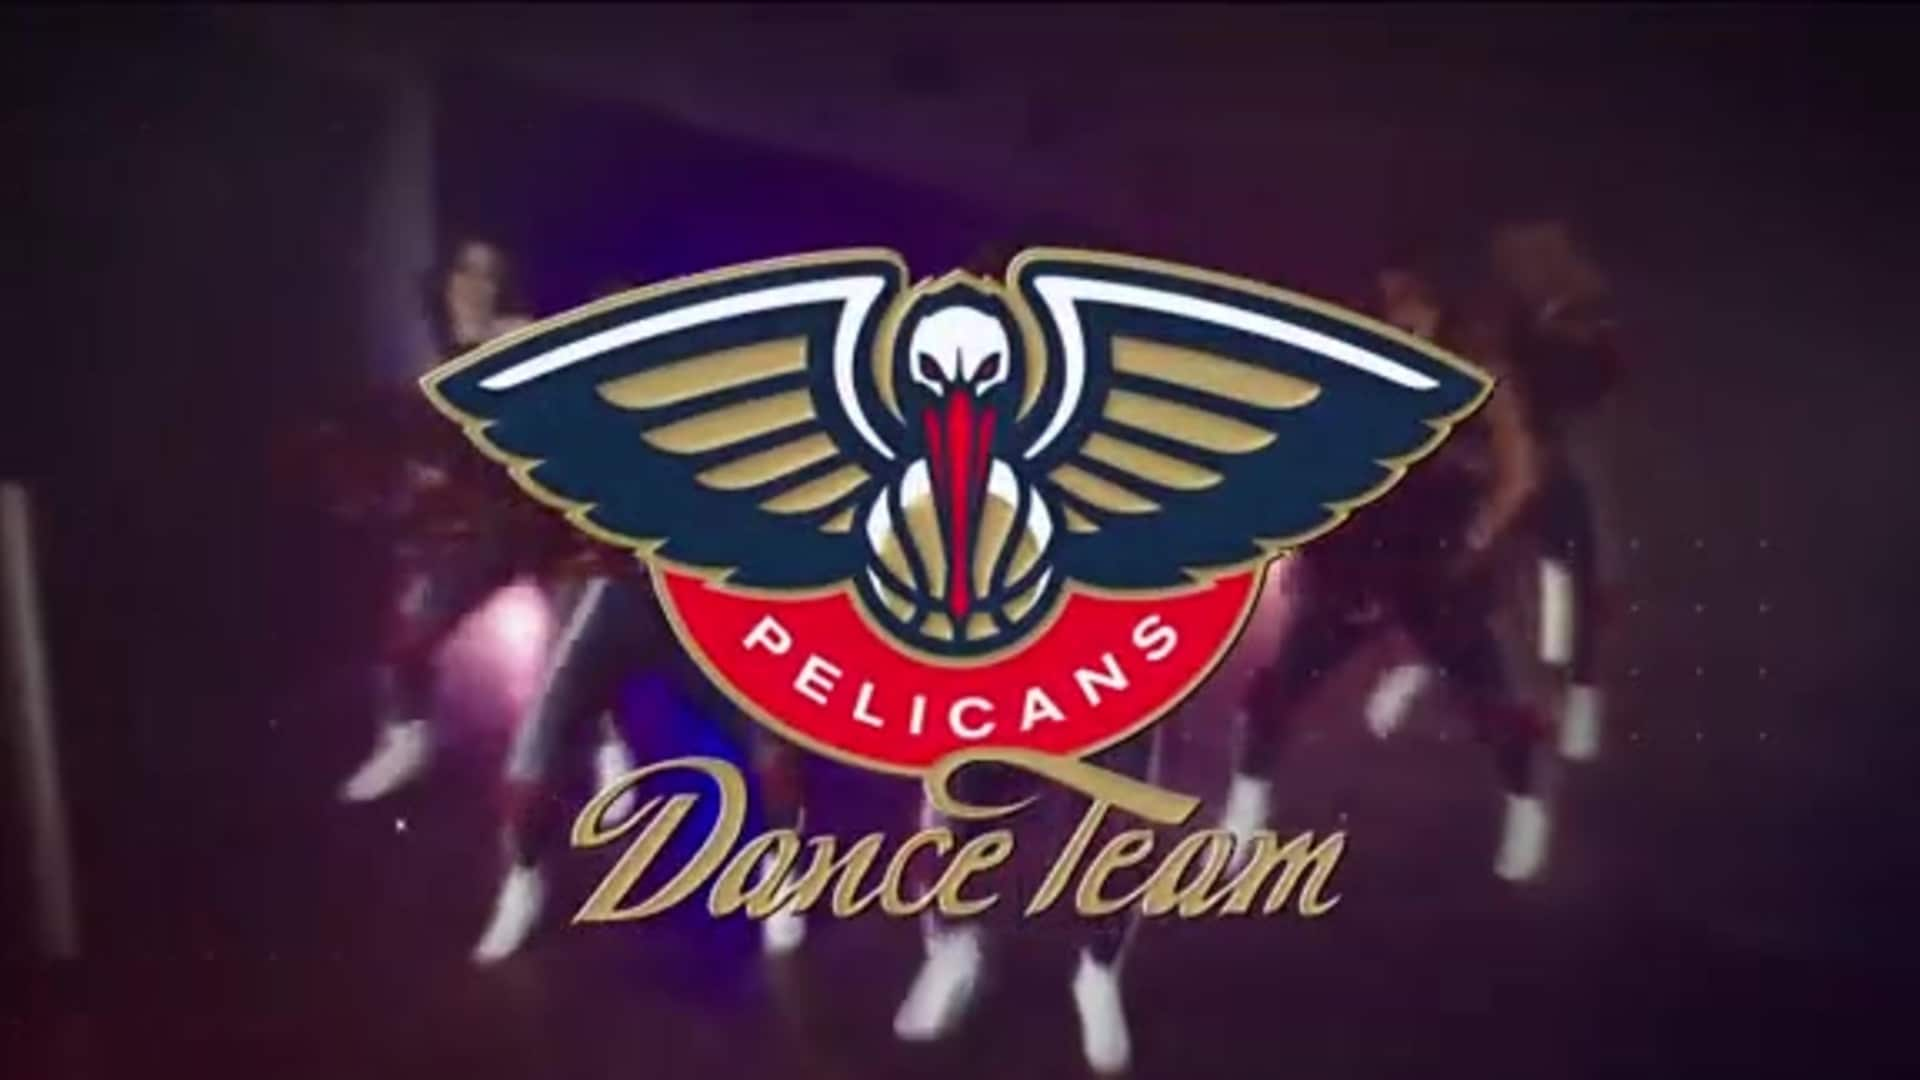 Entertainment: Pelicans Dance Team 2nd quarter performance - February 28 vs. Cleveland Cavaliers